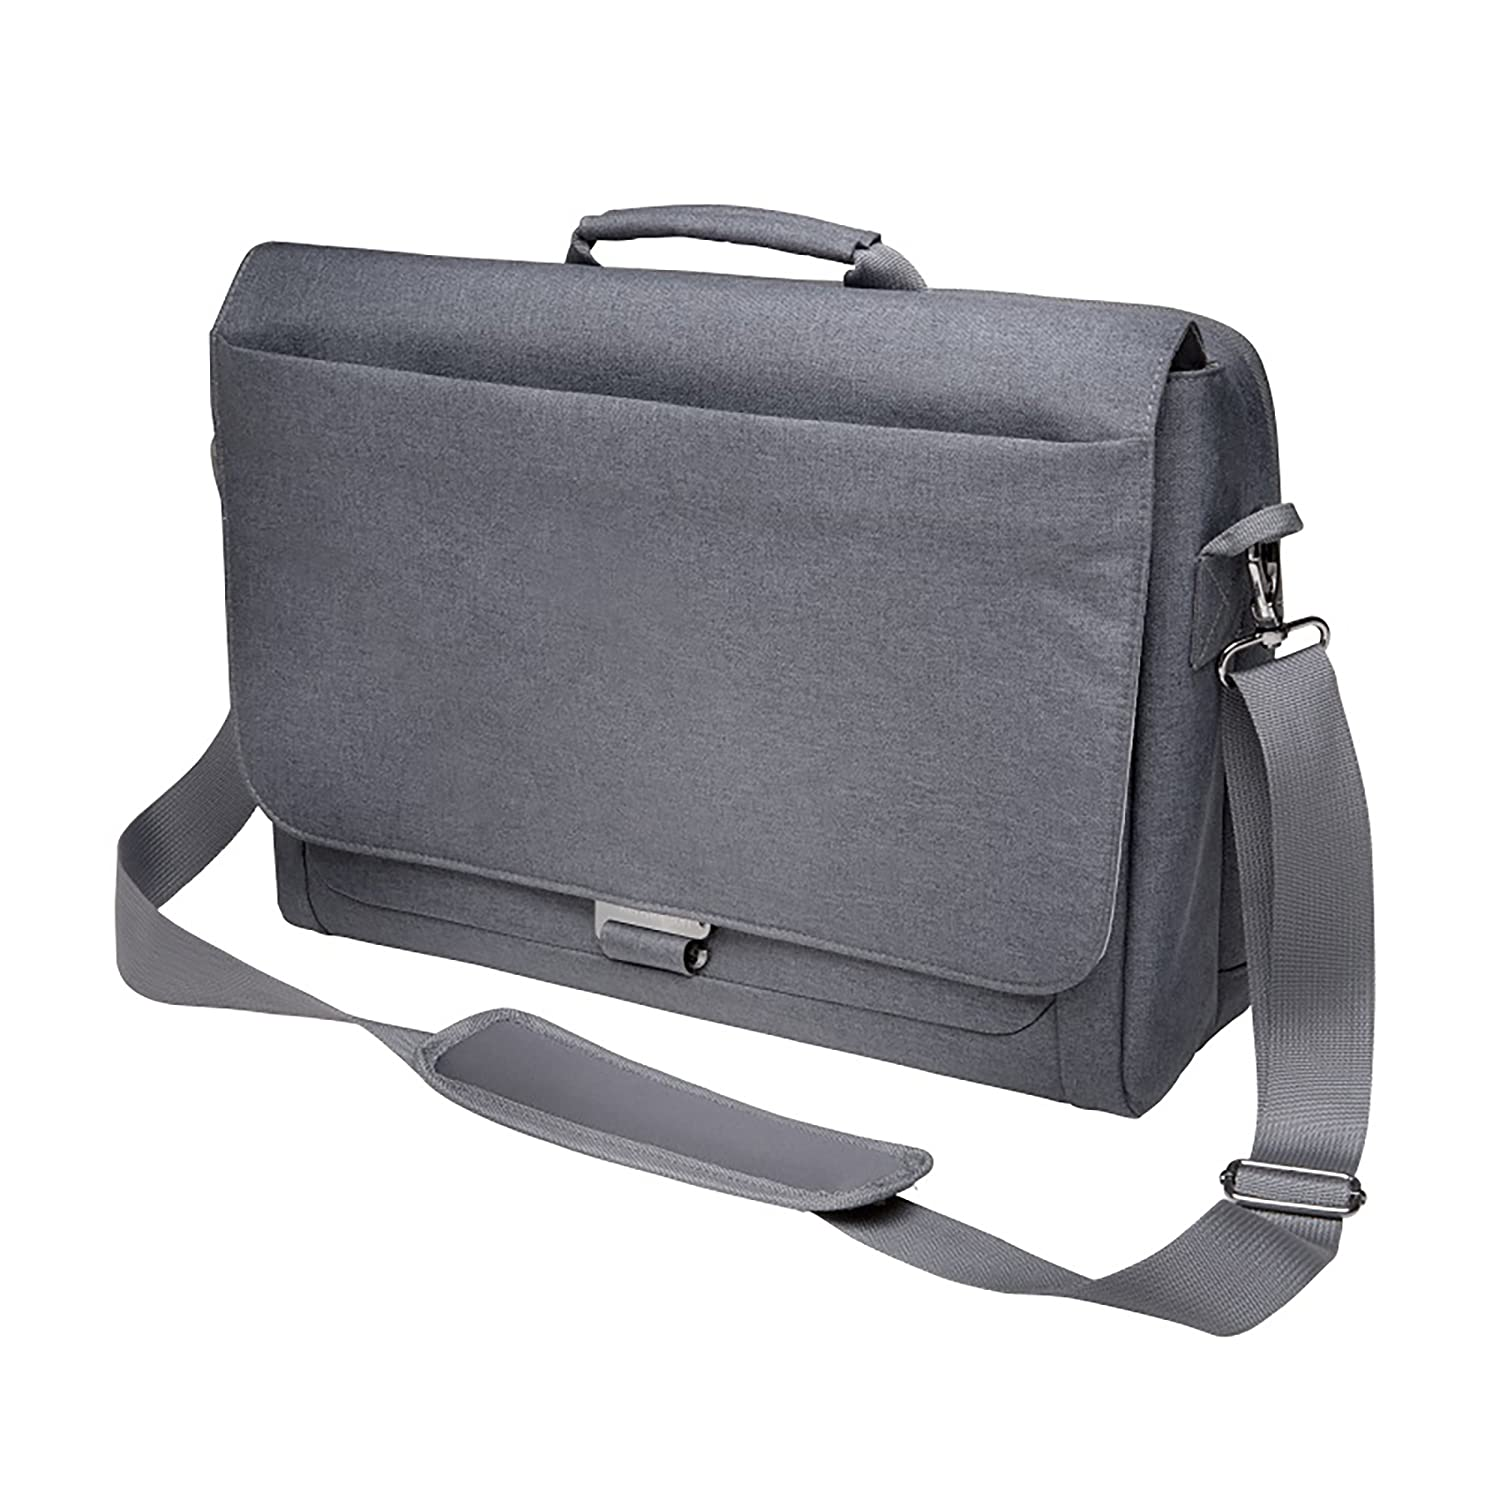 5f50ce814506 Kensington LM340 Laptop Case Messenger 14.4-Inch (K62623WW)